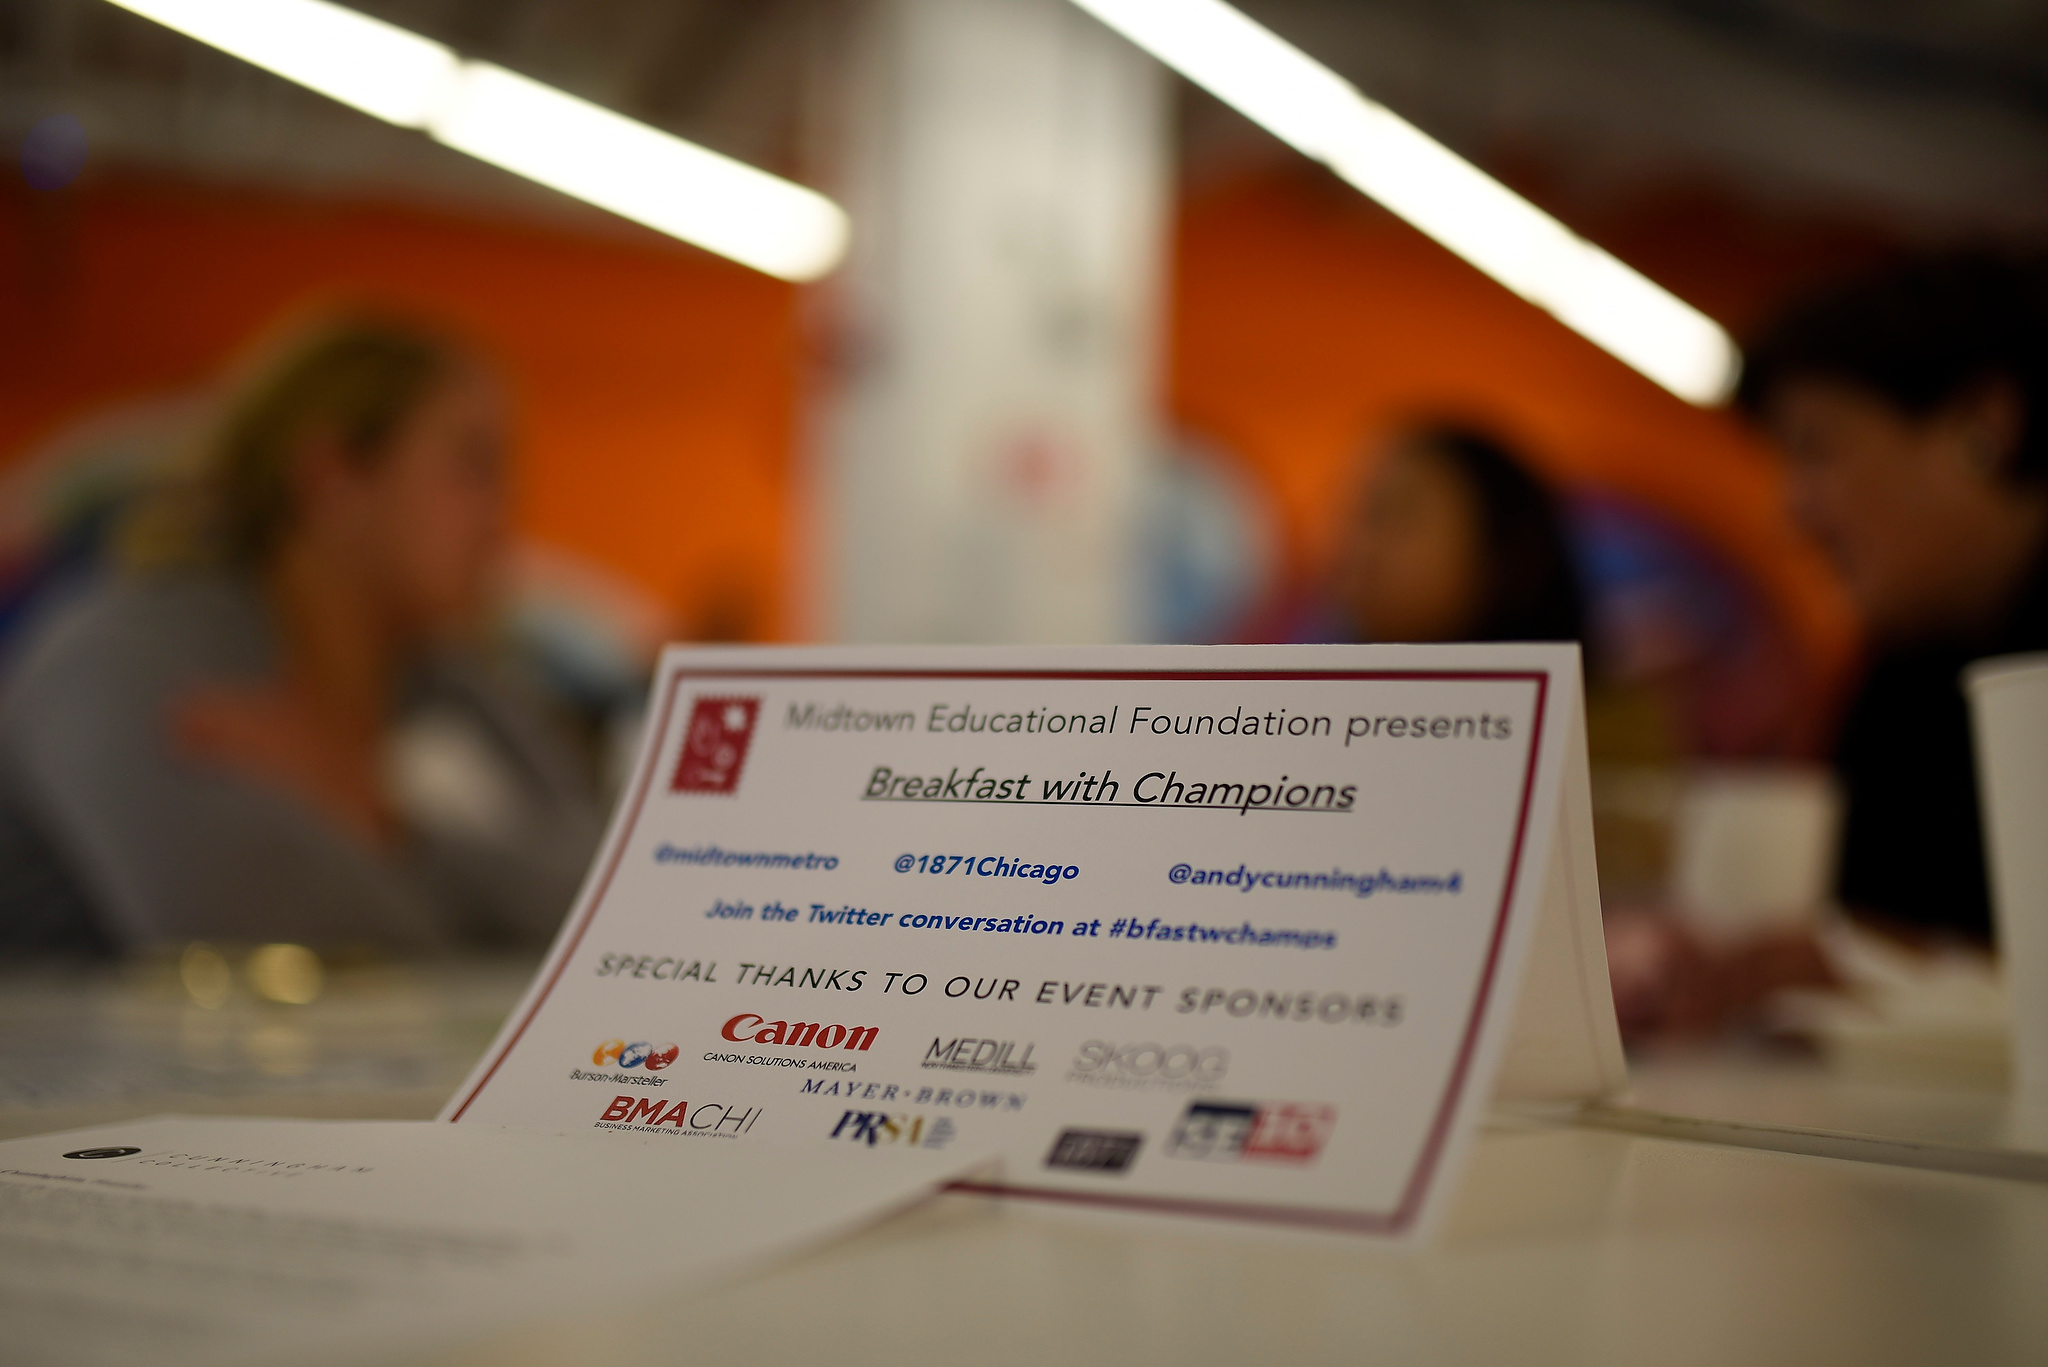 20160407-_SSV9688.NEF-HAT Tour with Andrea Cunningham and Midtown Education Foundation Breakfast with Champions-Photos-by-CloudSpotter.jpg